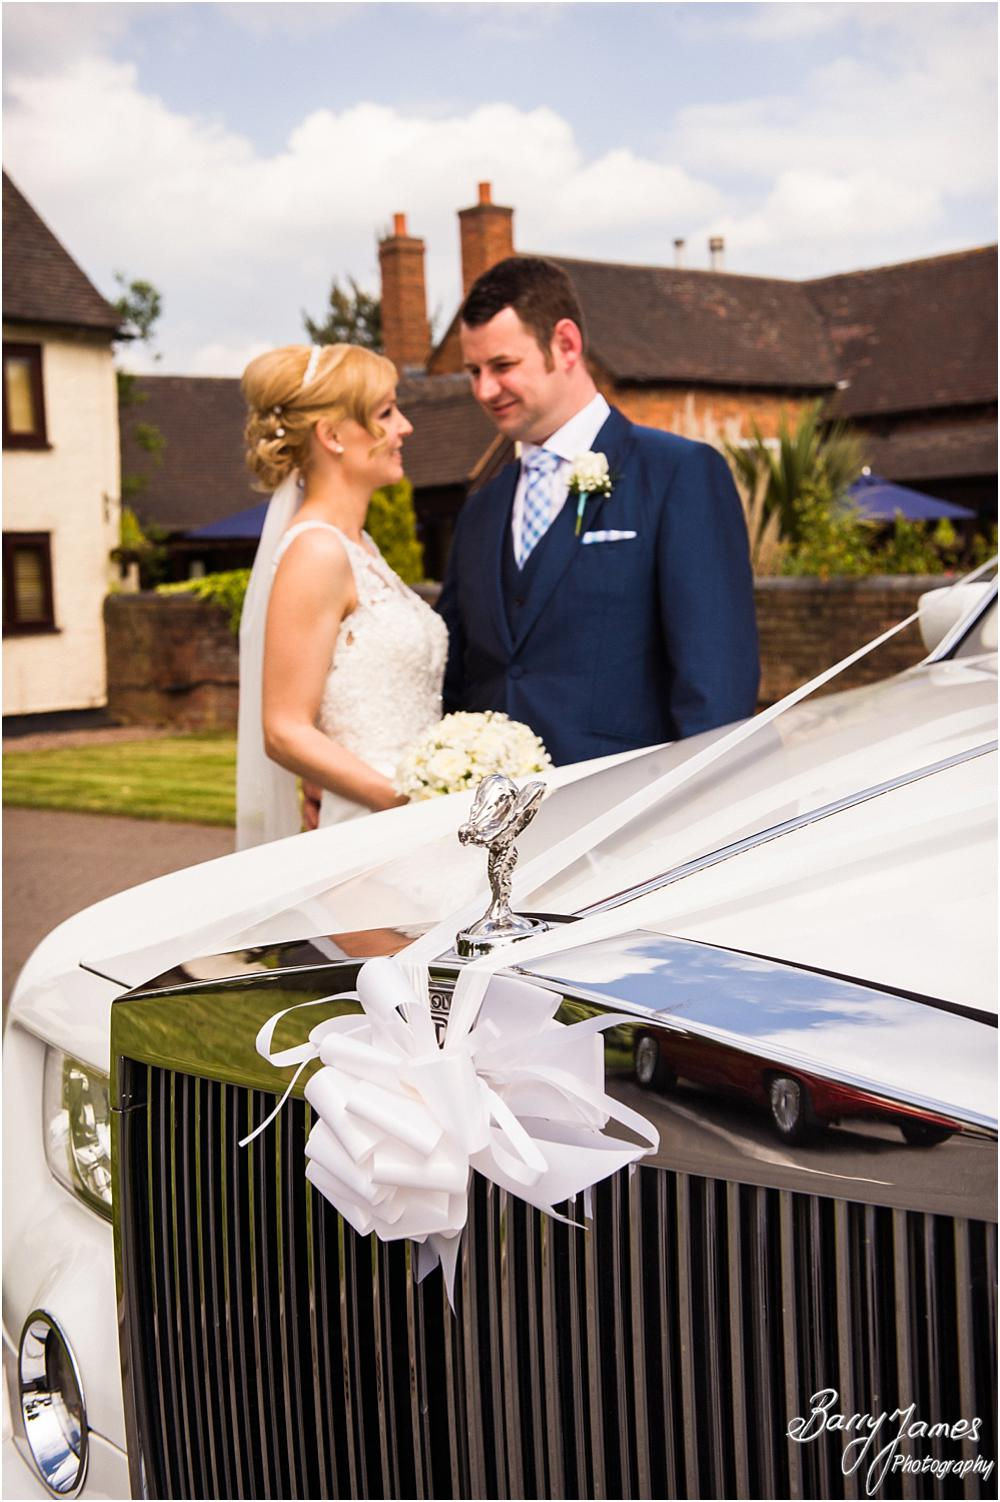 Stunning Rolls Royce for the Bride and Groom at Oak Farm Hotel in Cannock by Cannock Wedding Photographers Barry James